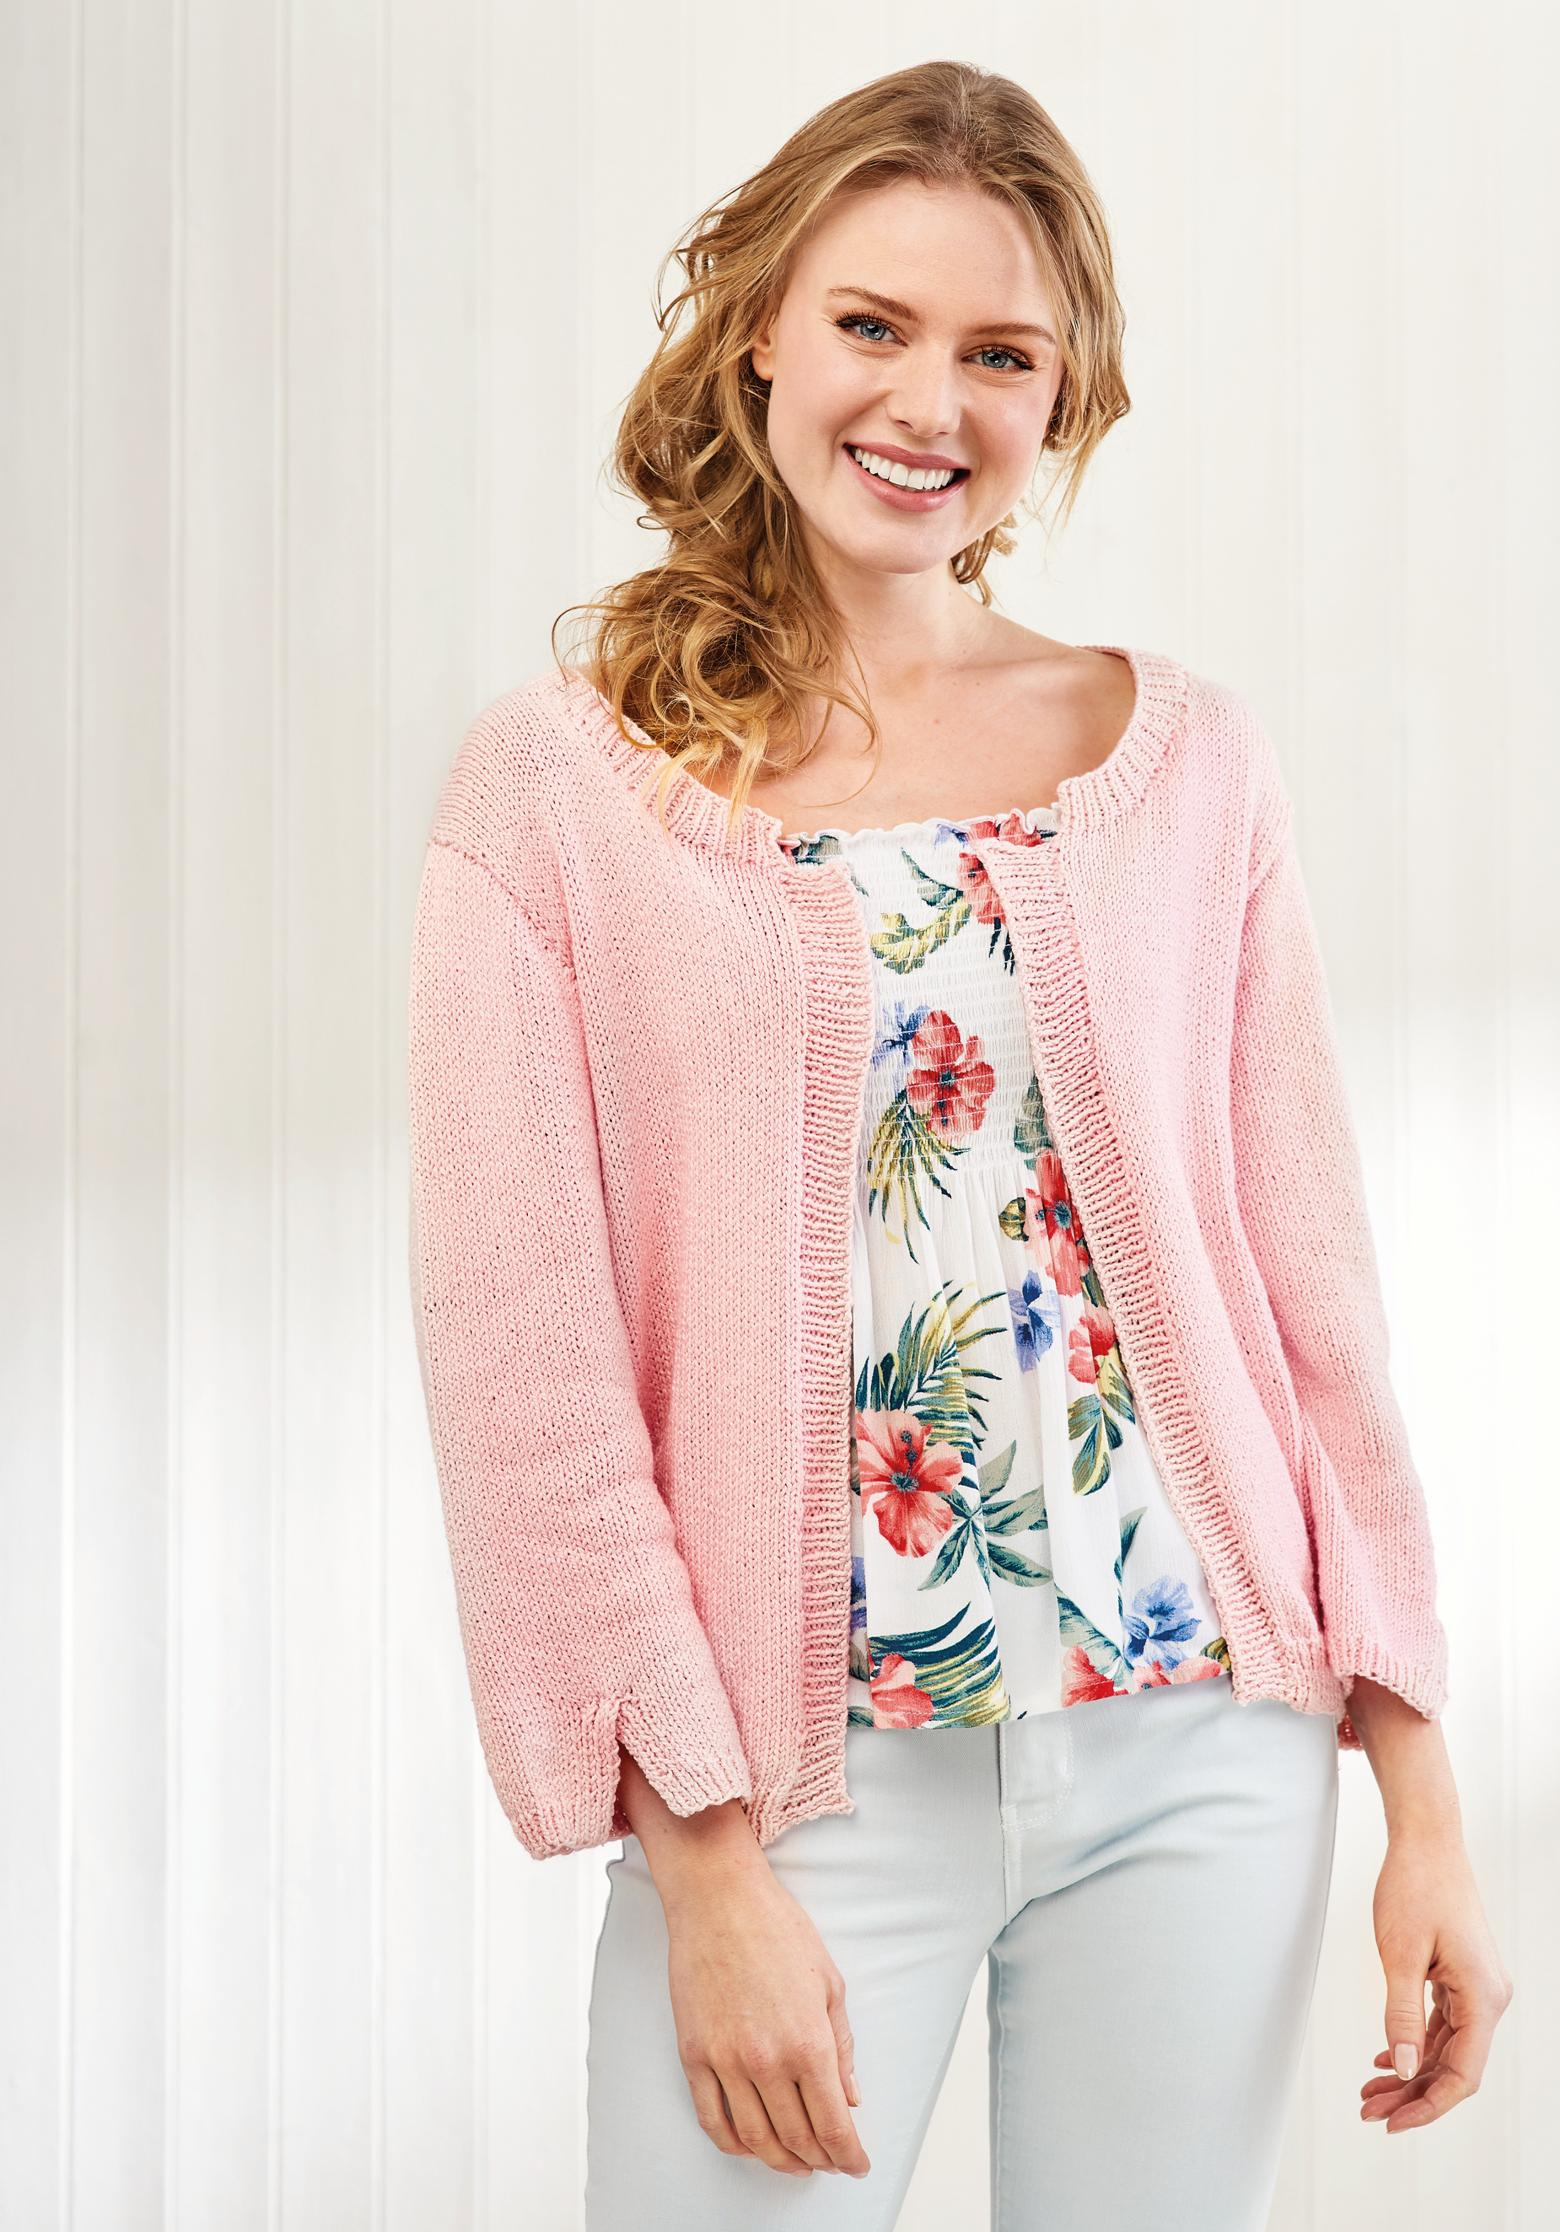 Simple Cotton Cardigan | Free Knitting Patterns | Let's ...